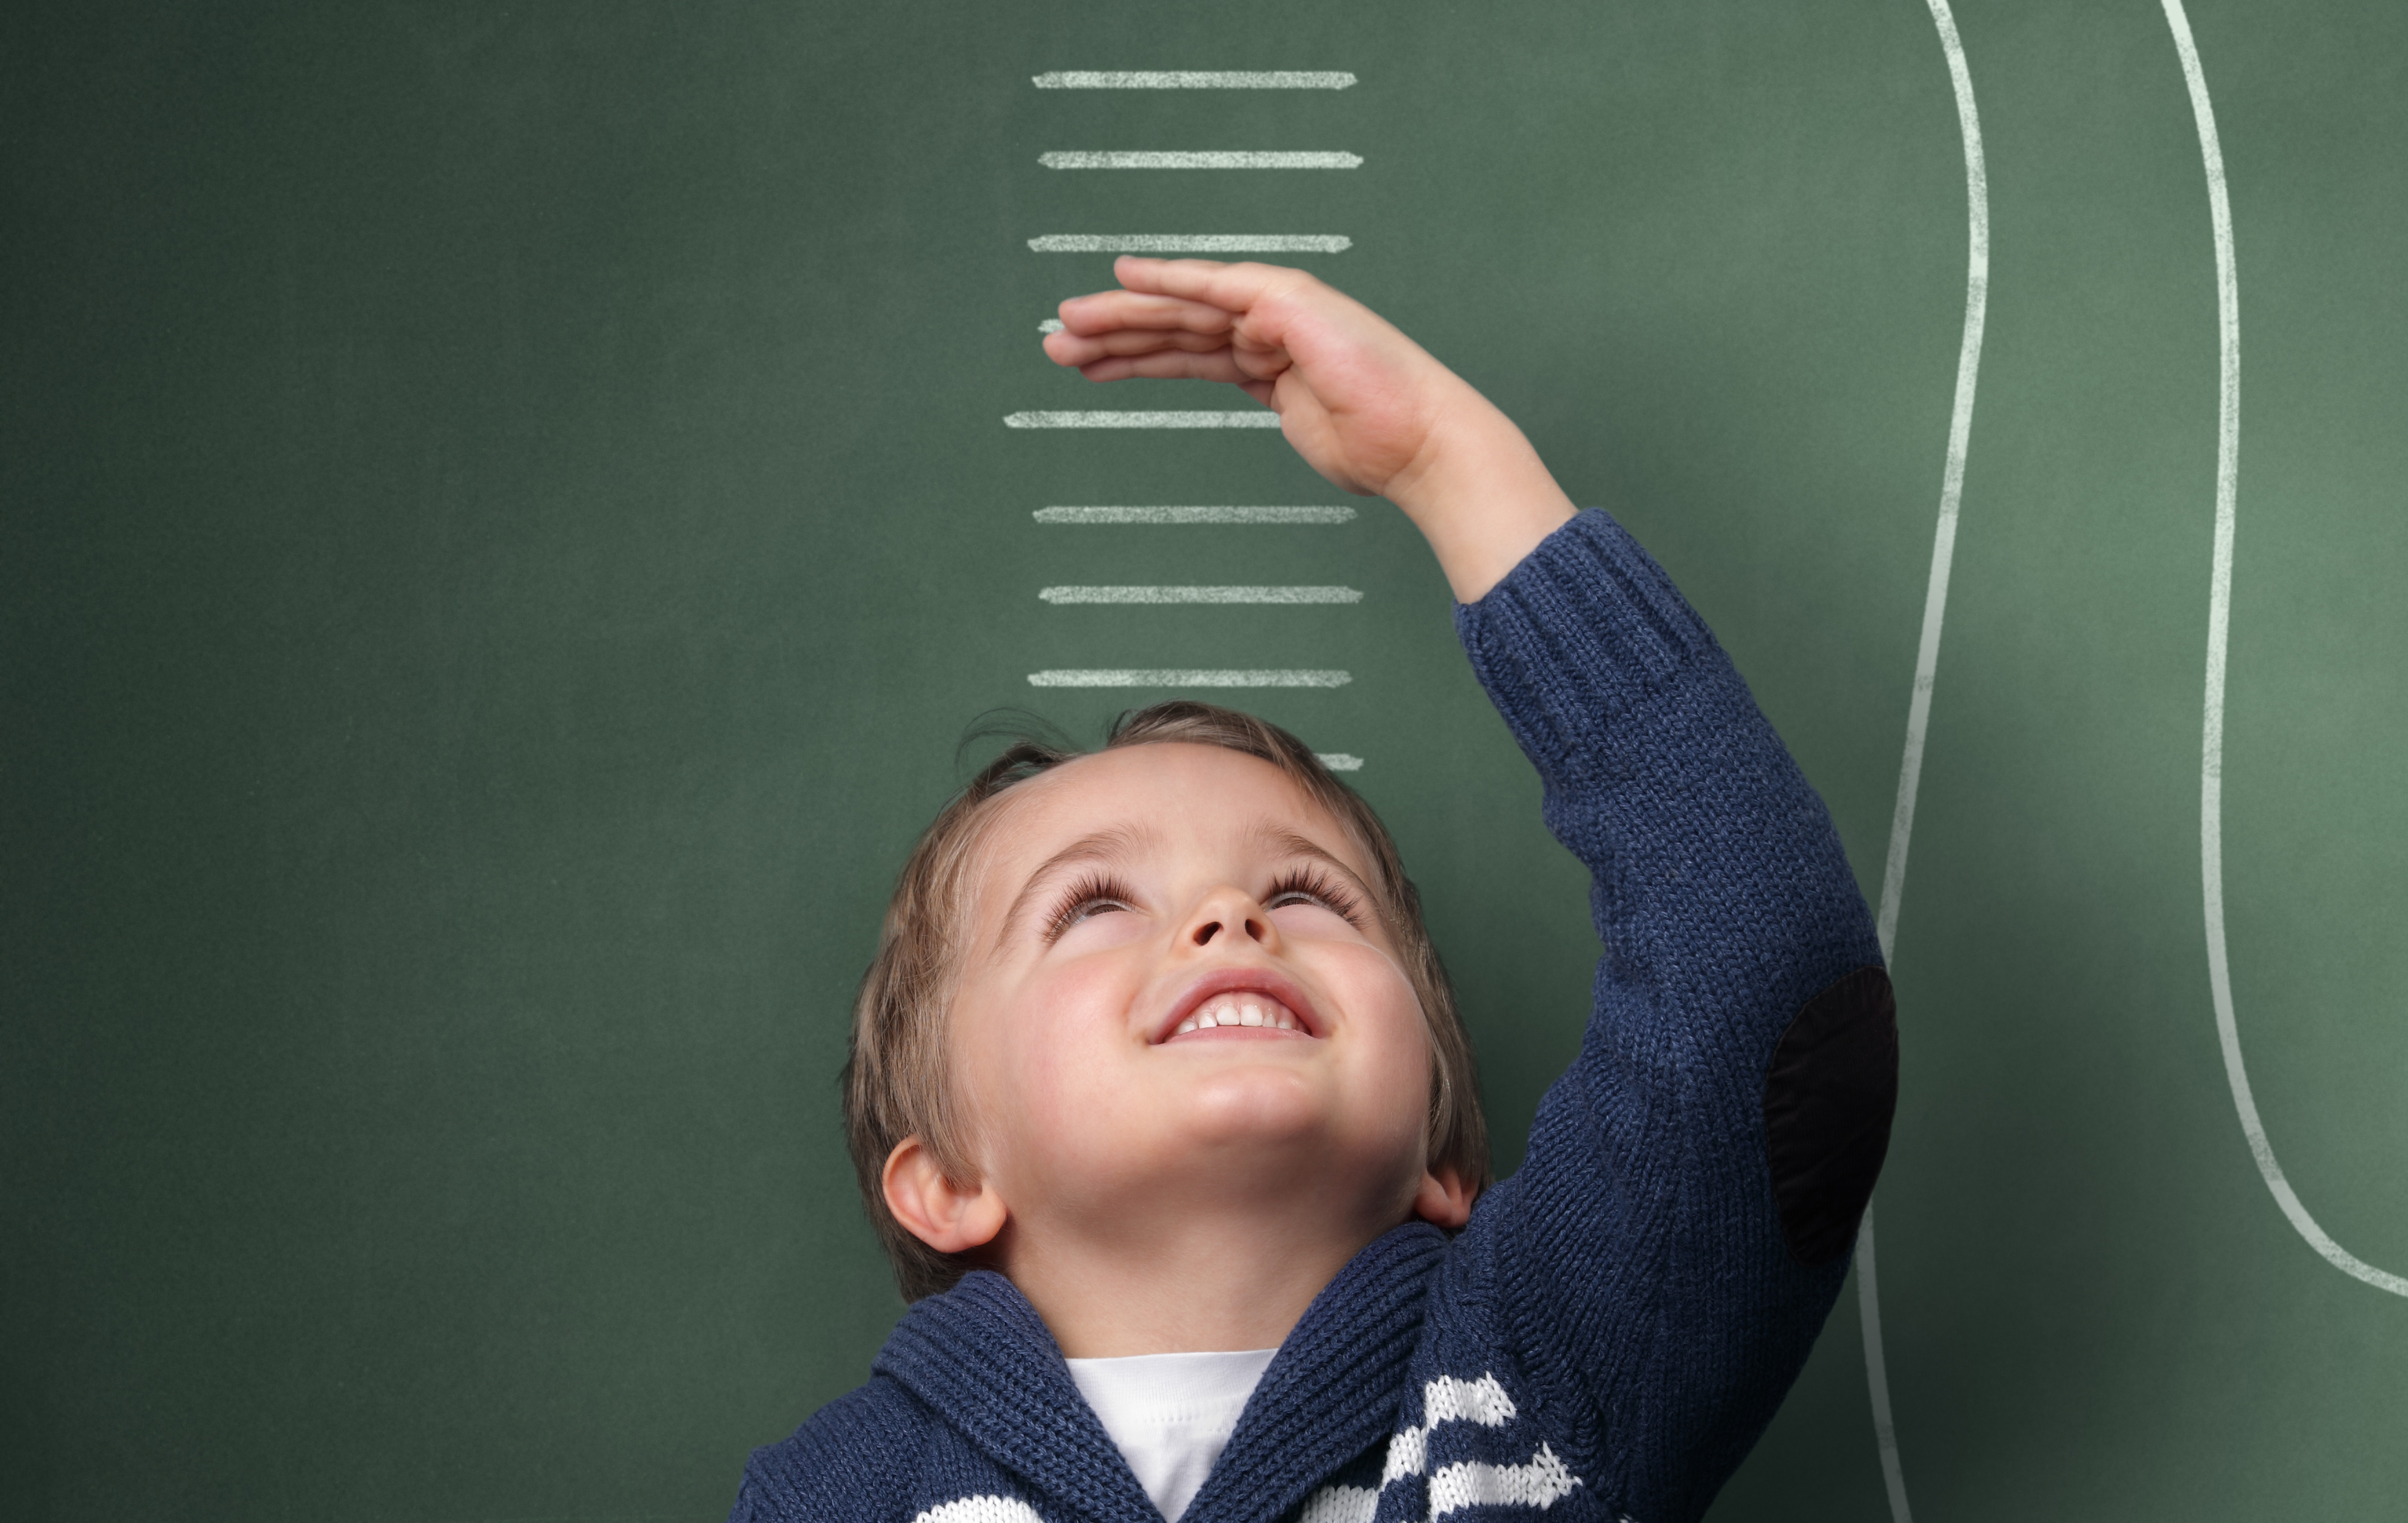 Photo of a young boy measuring his growth in height against a blackboard with chalk dinosaur scale